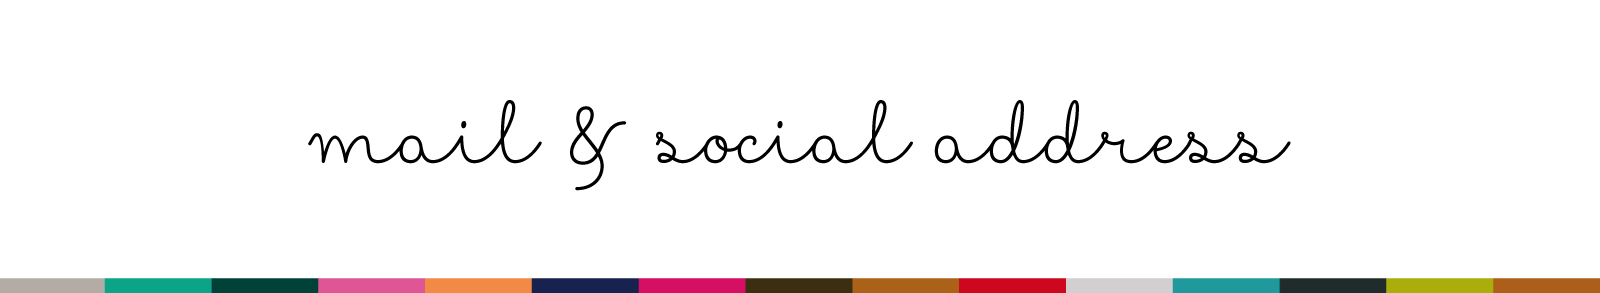 mela e carota : social address